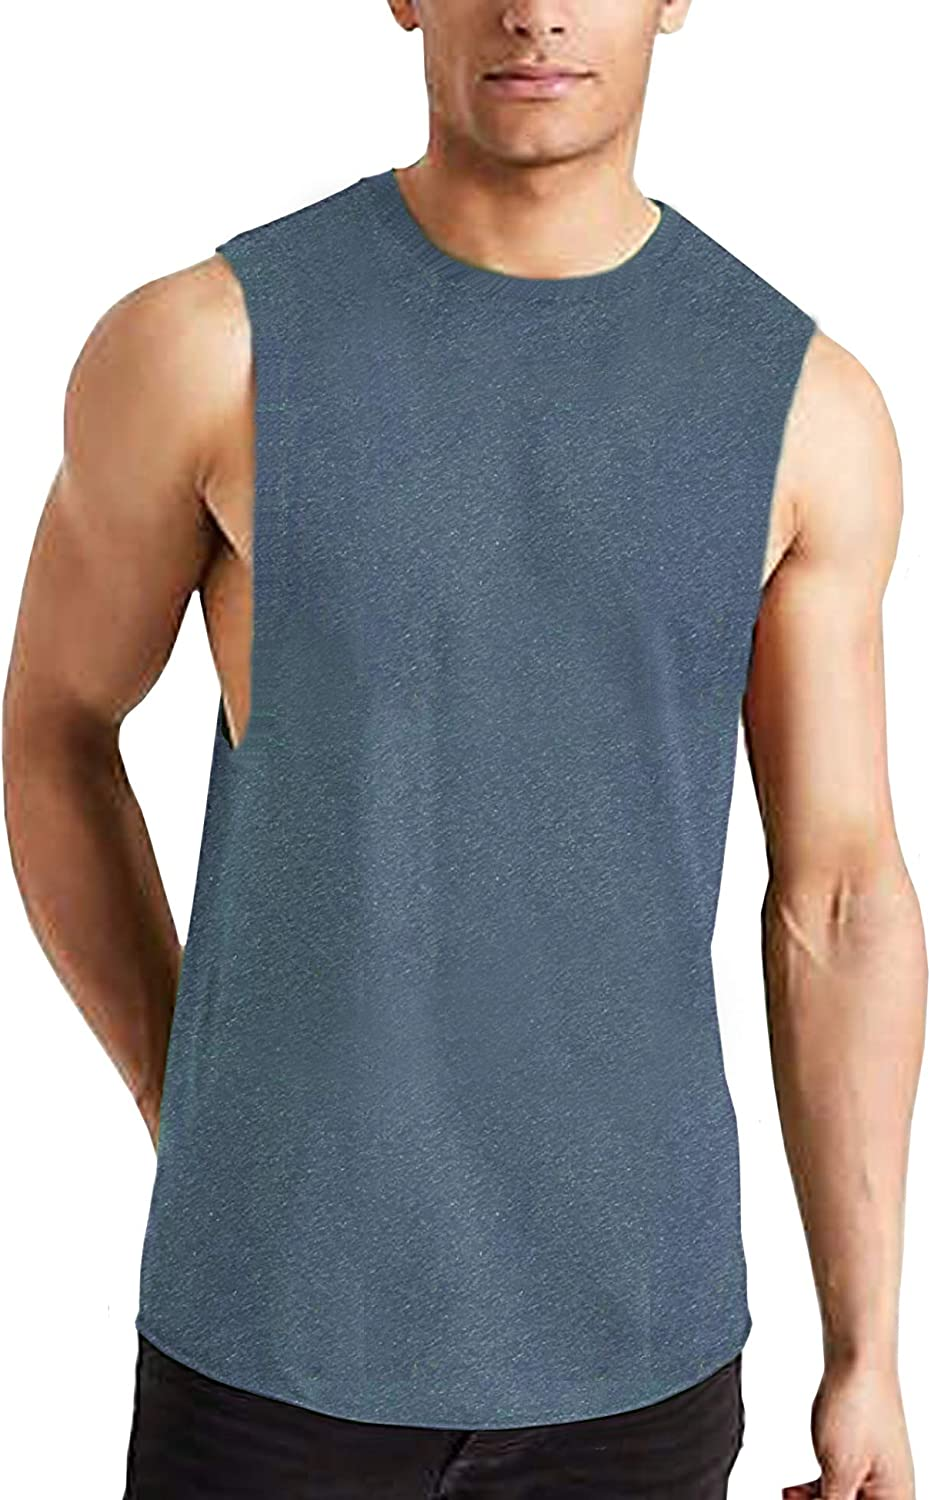 Pacinoble Mens Gym Shirts Bodybuilding Stringer Tank Top Muscle Workout Shirt Fitness Sleeveless Vest